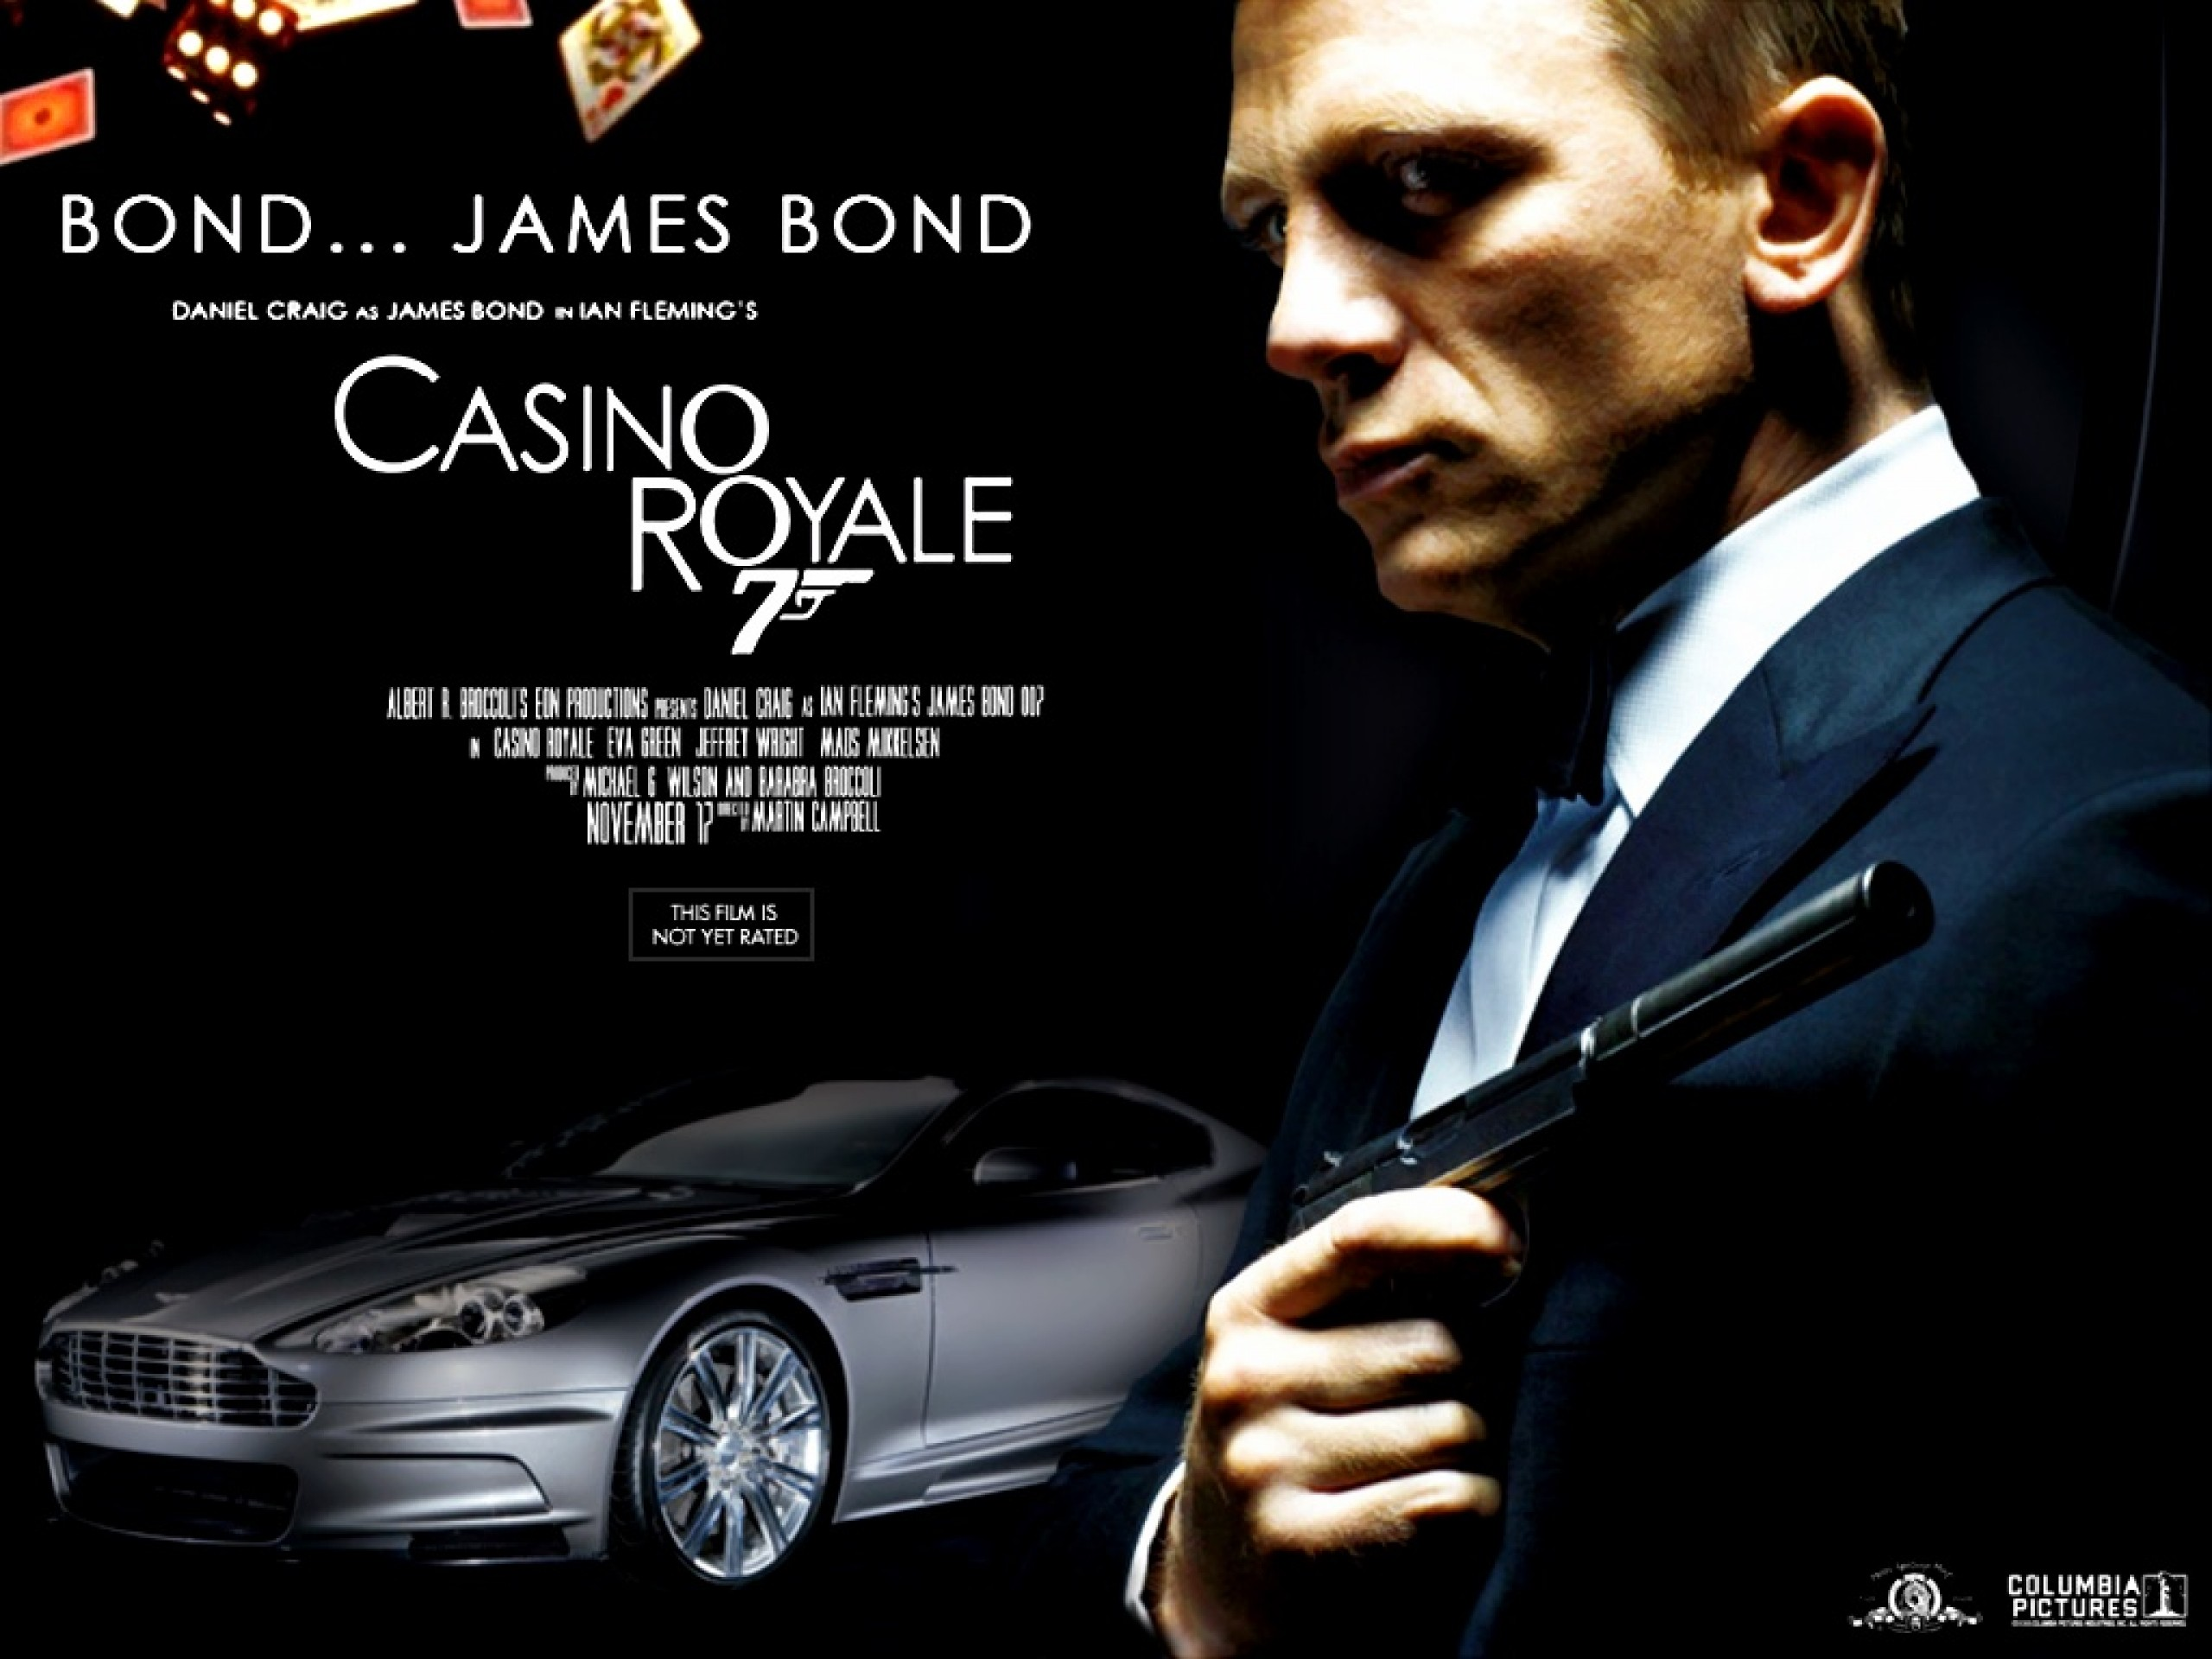 casino royale james bond full movie online twist game login